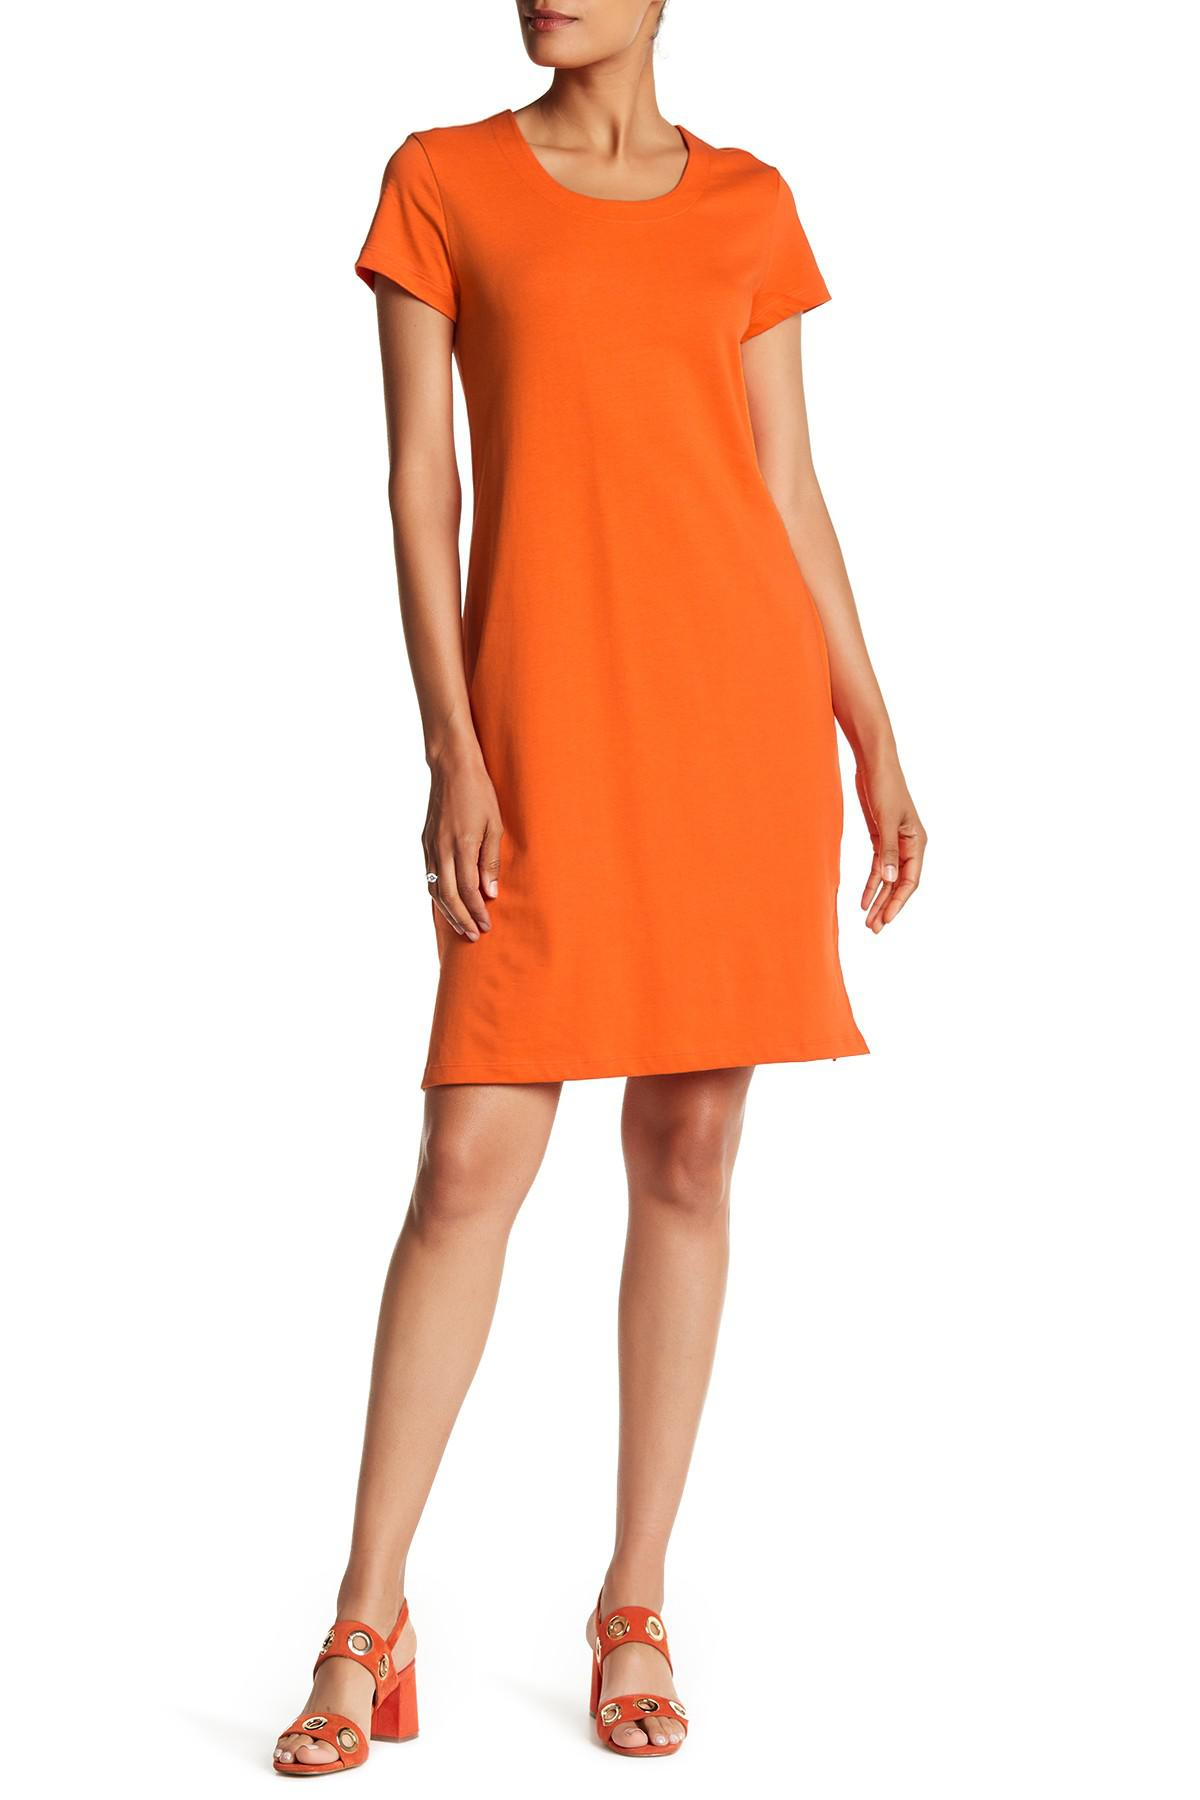 d02ded4e3d0 Lyst - Tommy Bahama Playa Del Jersey Tee Dress in Orange